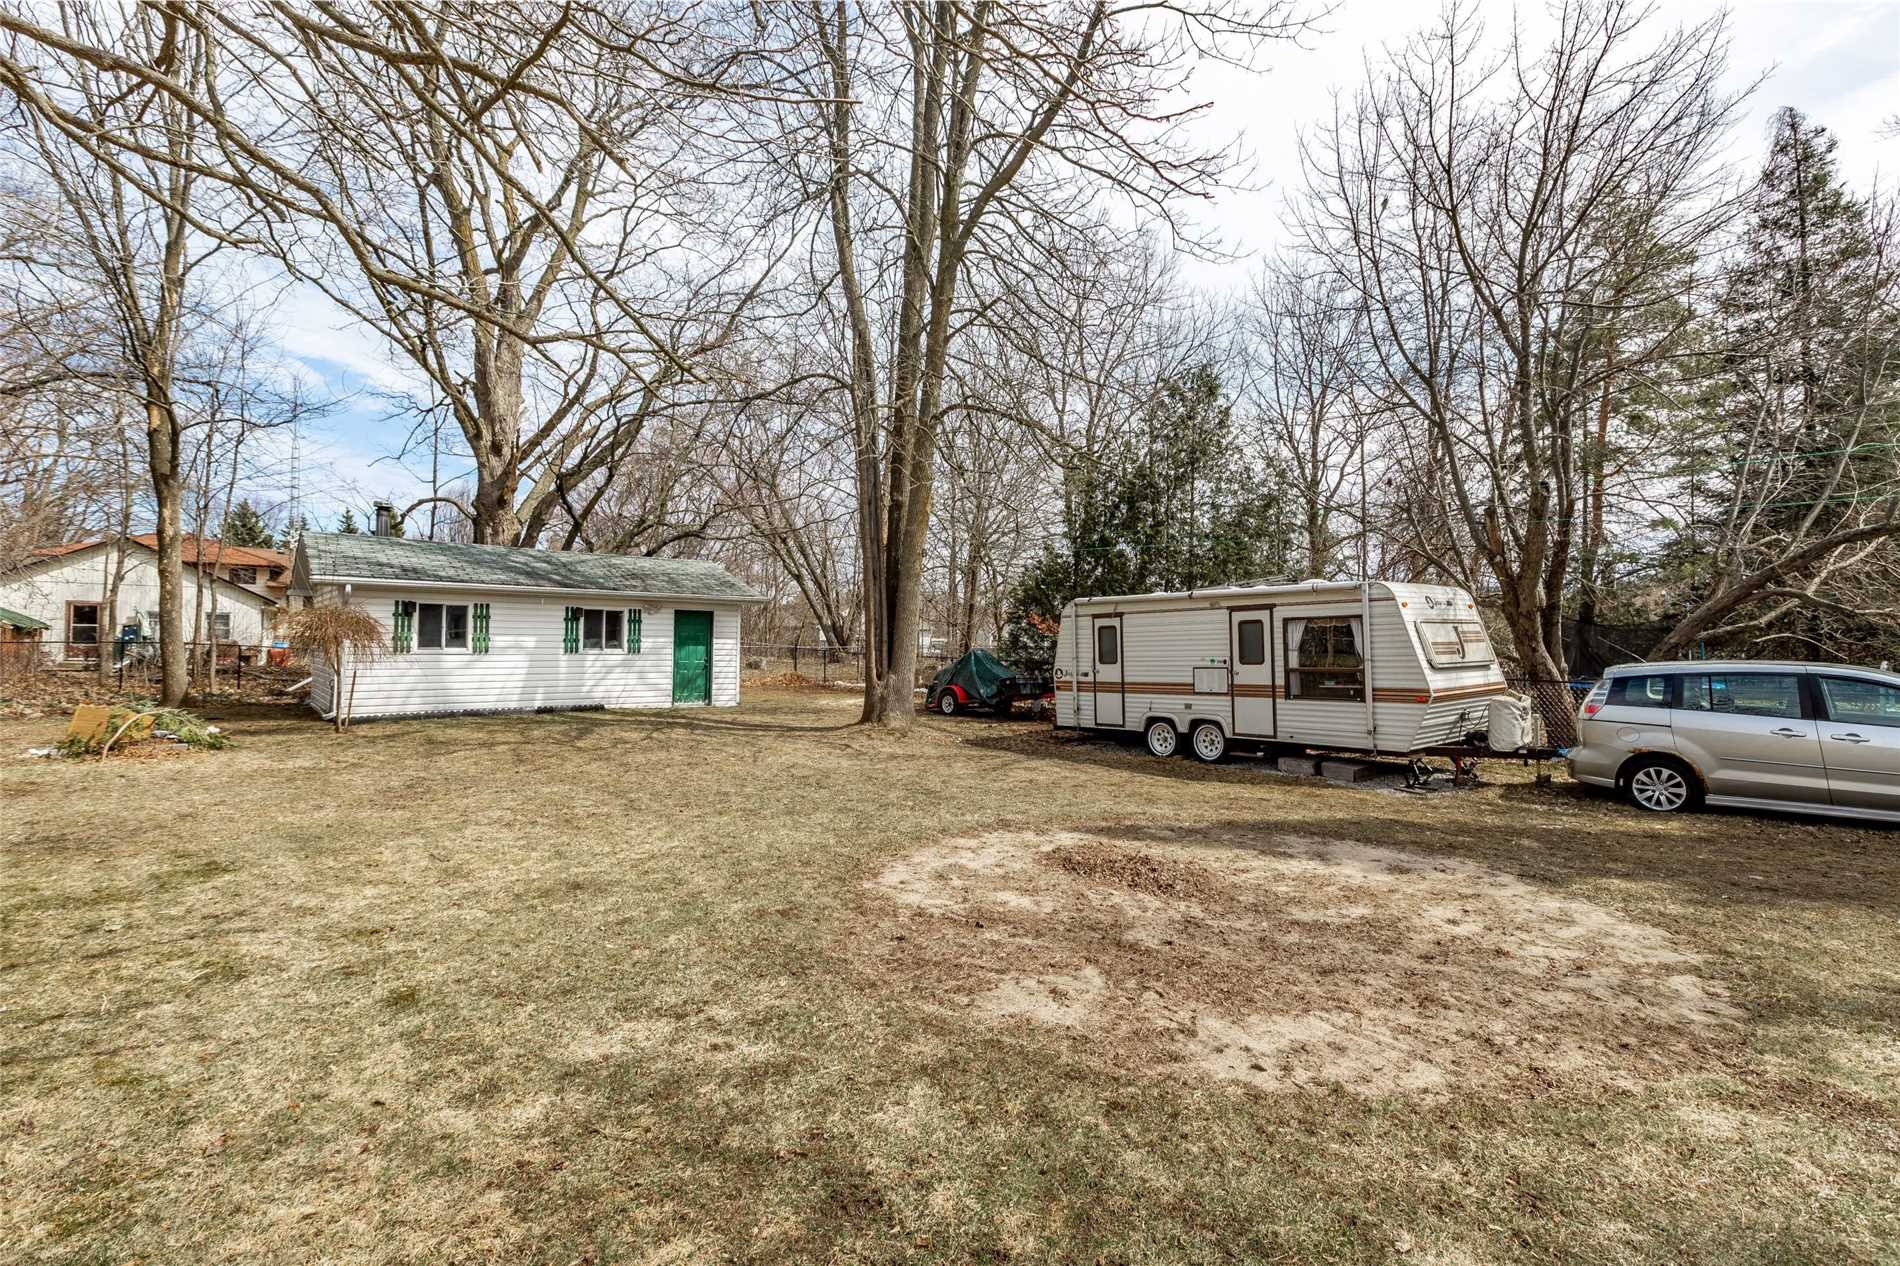 2129 Willard Ave, Innisfil N4419862